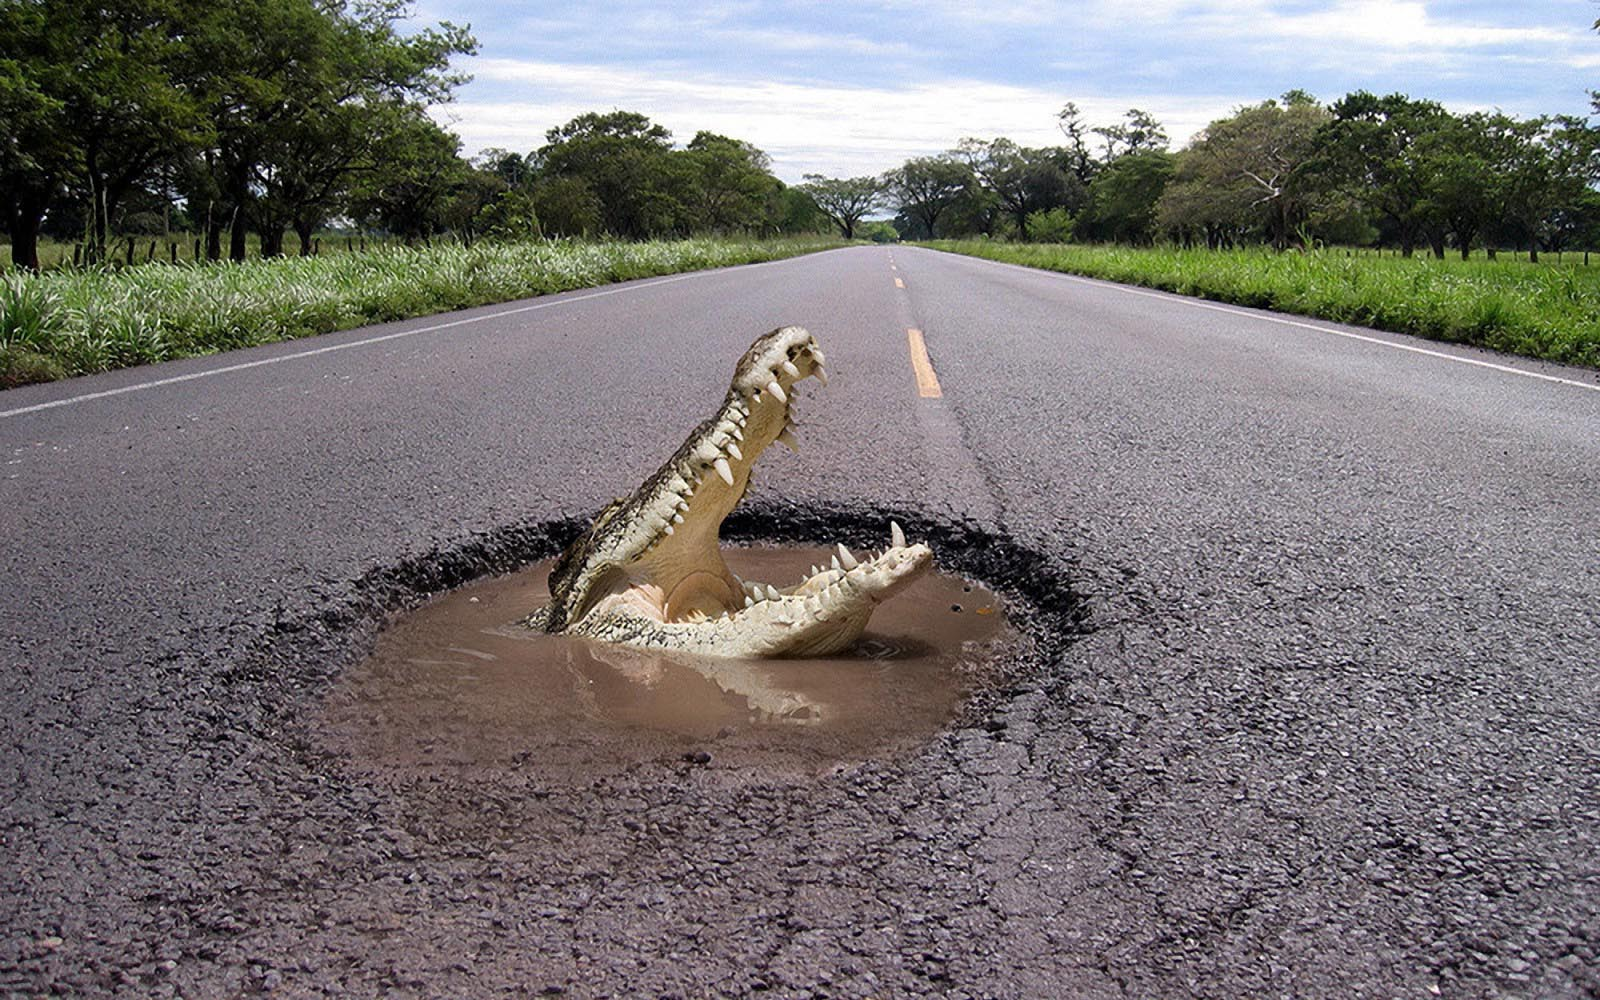 funny-wallpaper-with-a-crocodile-coming-out-of-a-hole-in-the-road